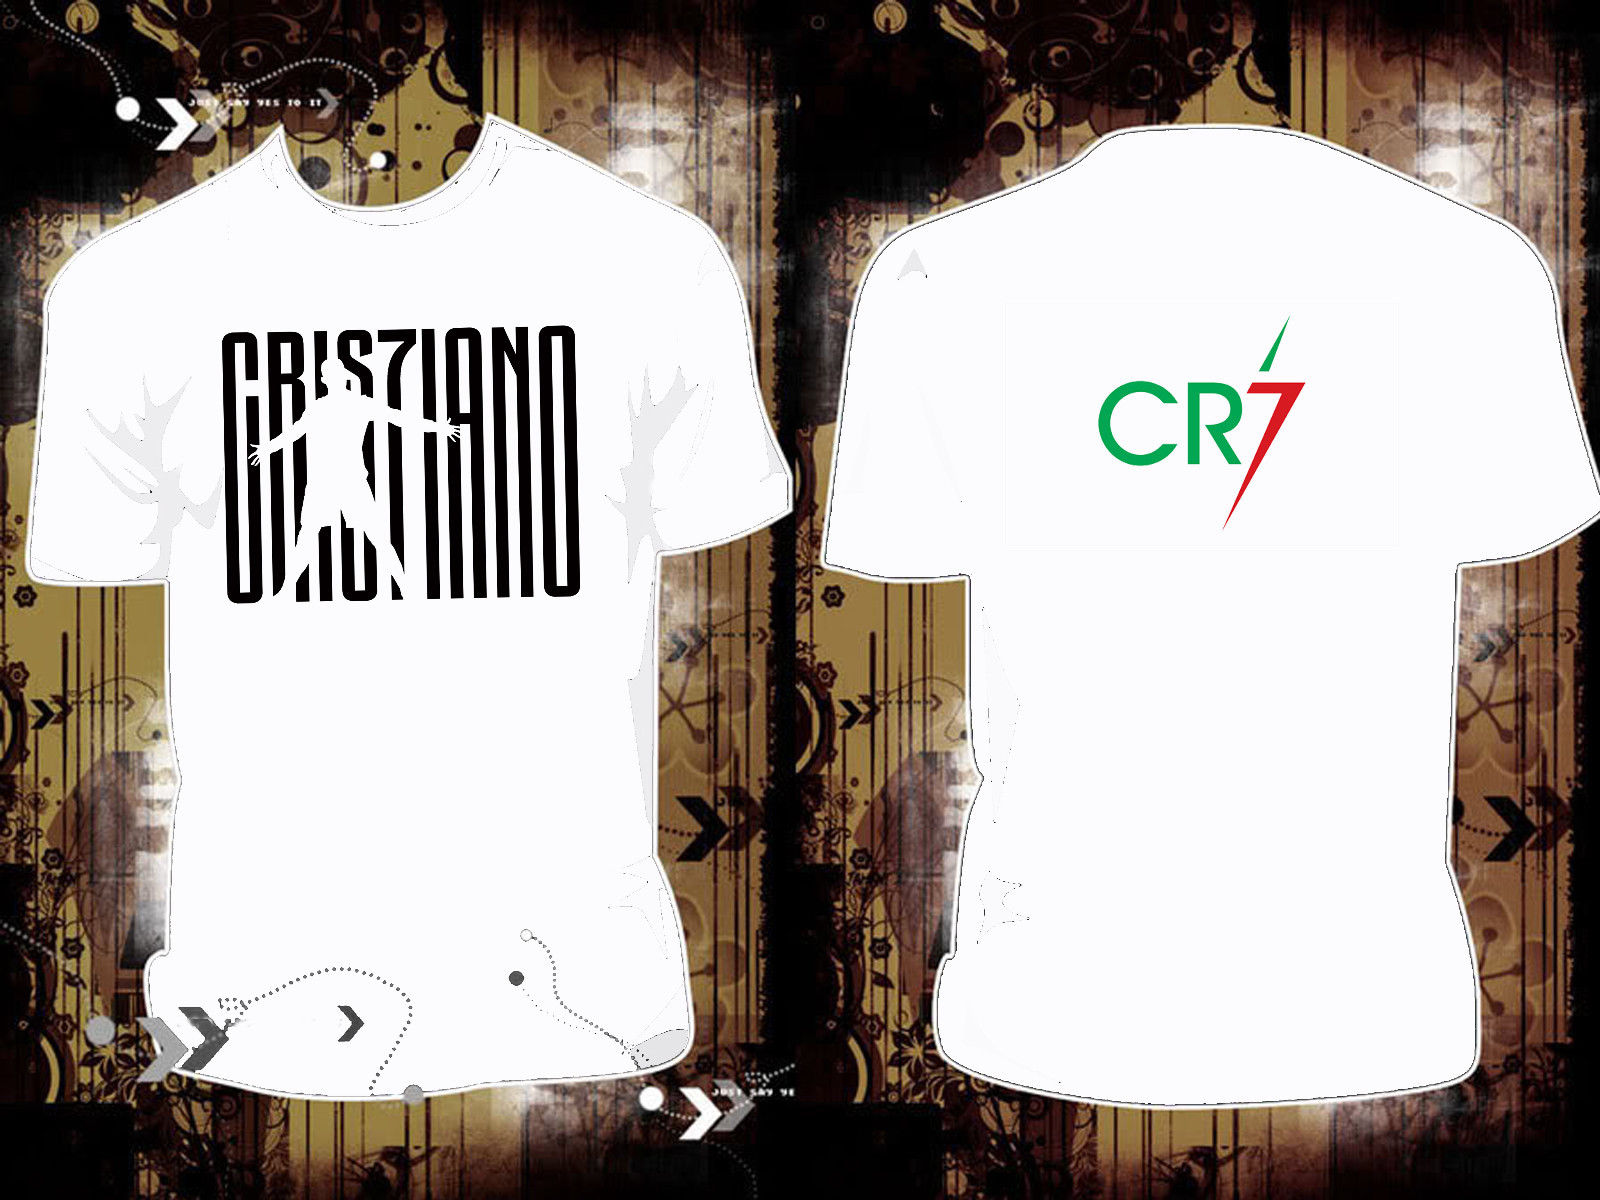 Lovely New Cr7 Juve T-shirt Cristiano Ronaldo Cris7iano Cool Casual Pride T Shirt Men Unisex Fashion Tshirt Free Shipping Funny Tops Tops & Tees